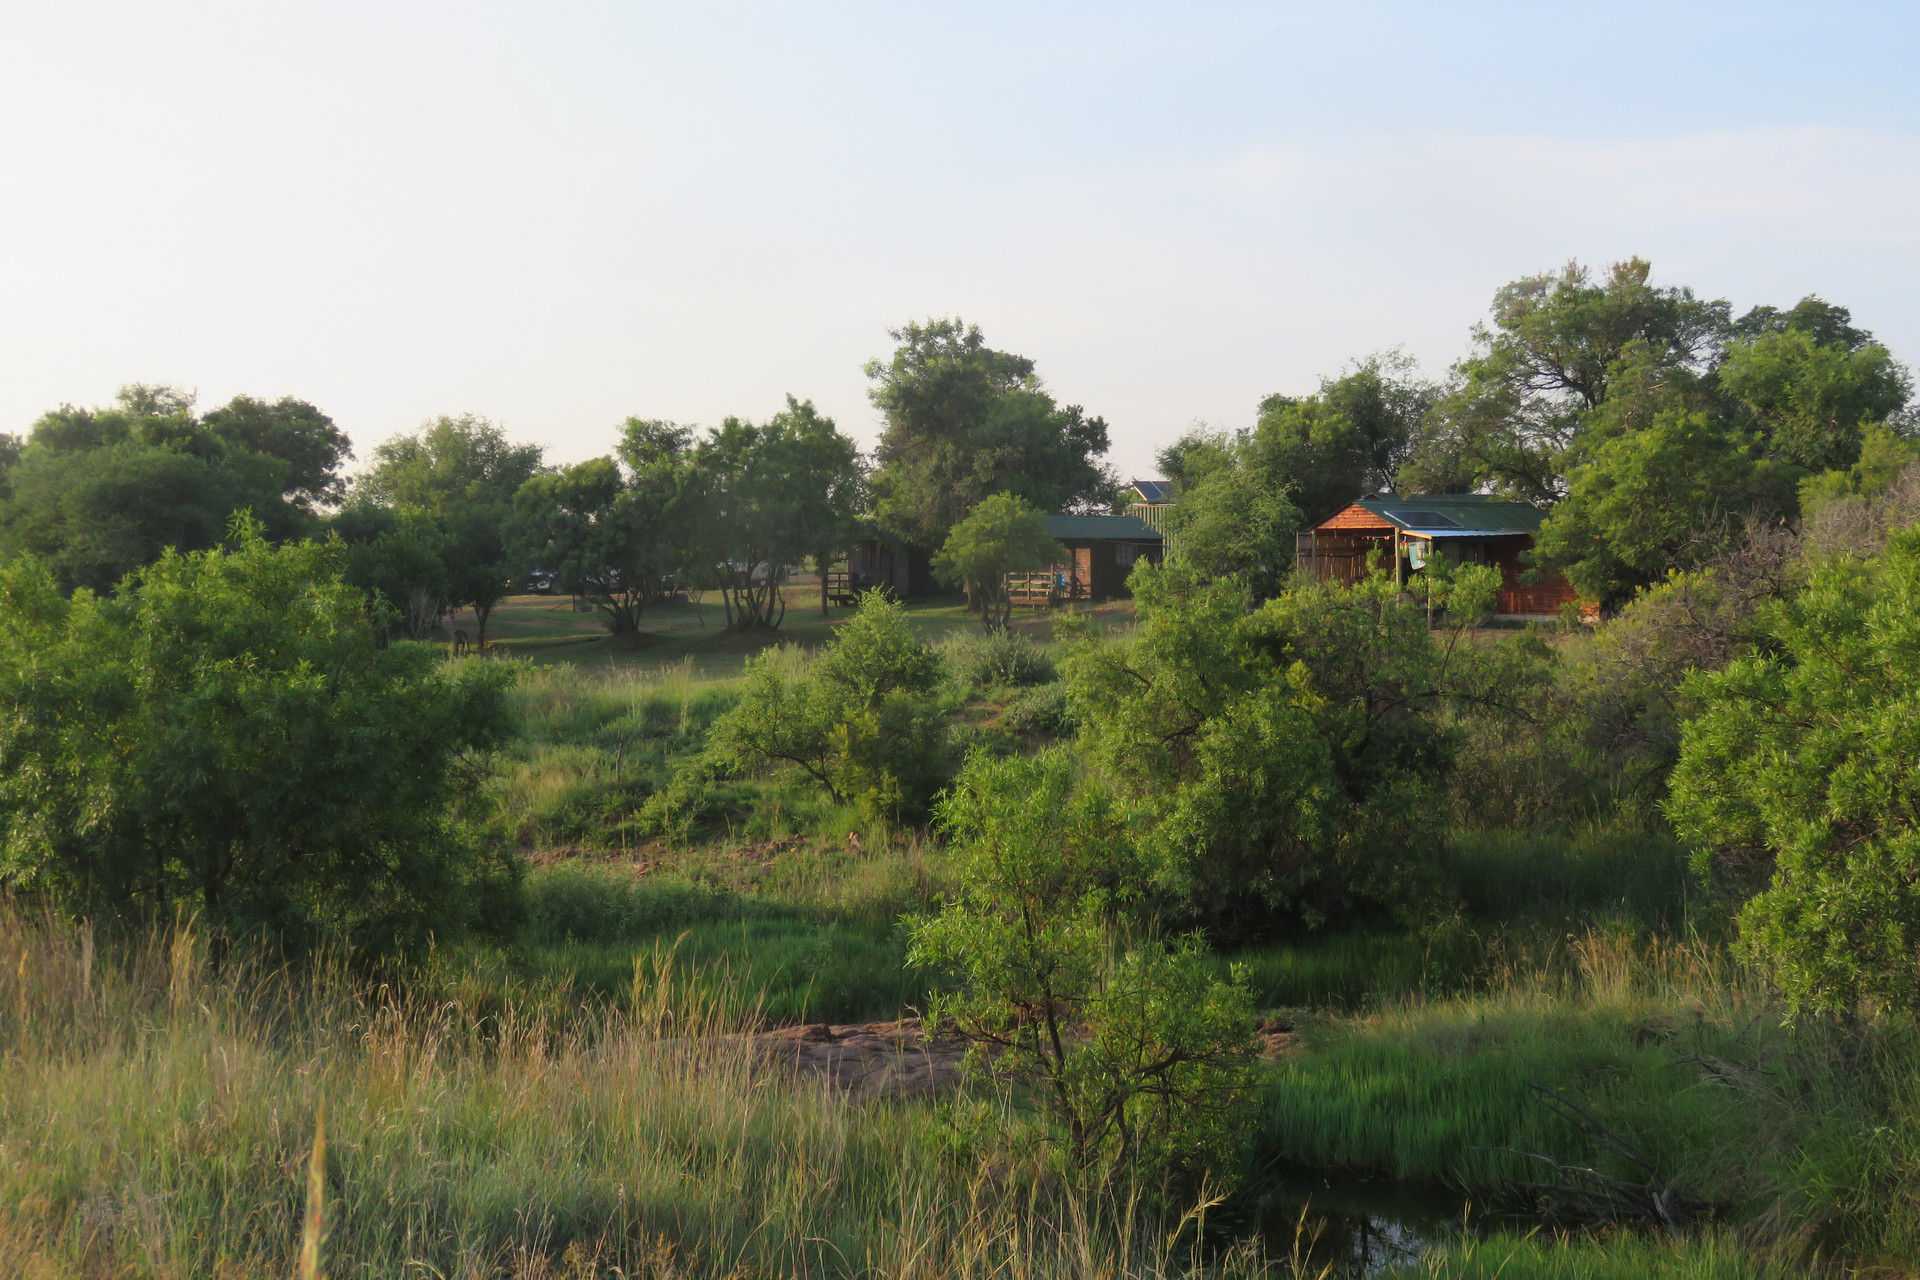 Camp From A Distance